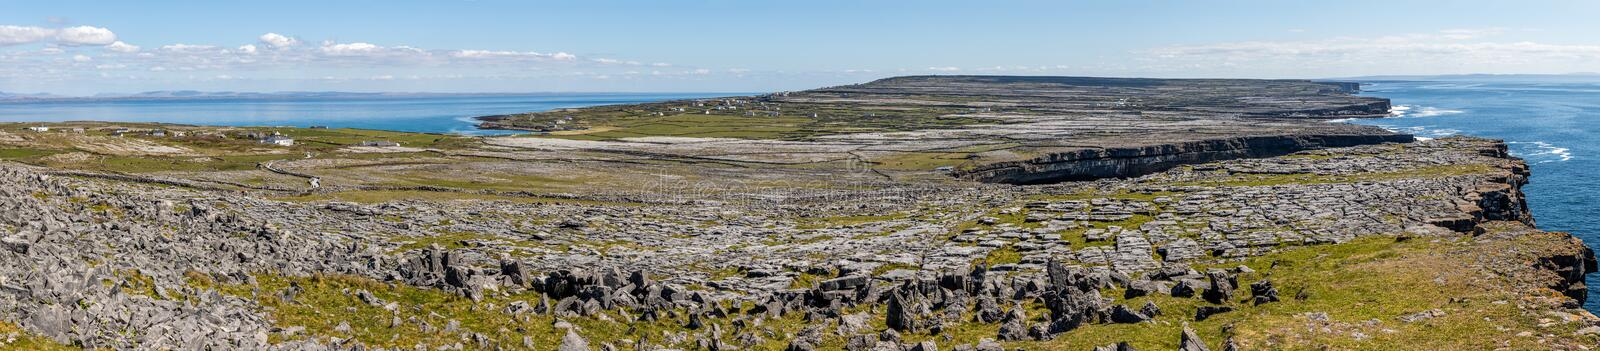 Panorama with Cliffs, Farms, rocks and vegetation in Inishmore with ocean in background. Aran Islands, Ireland stock image